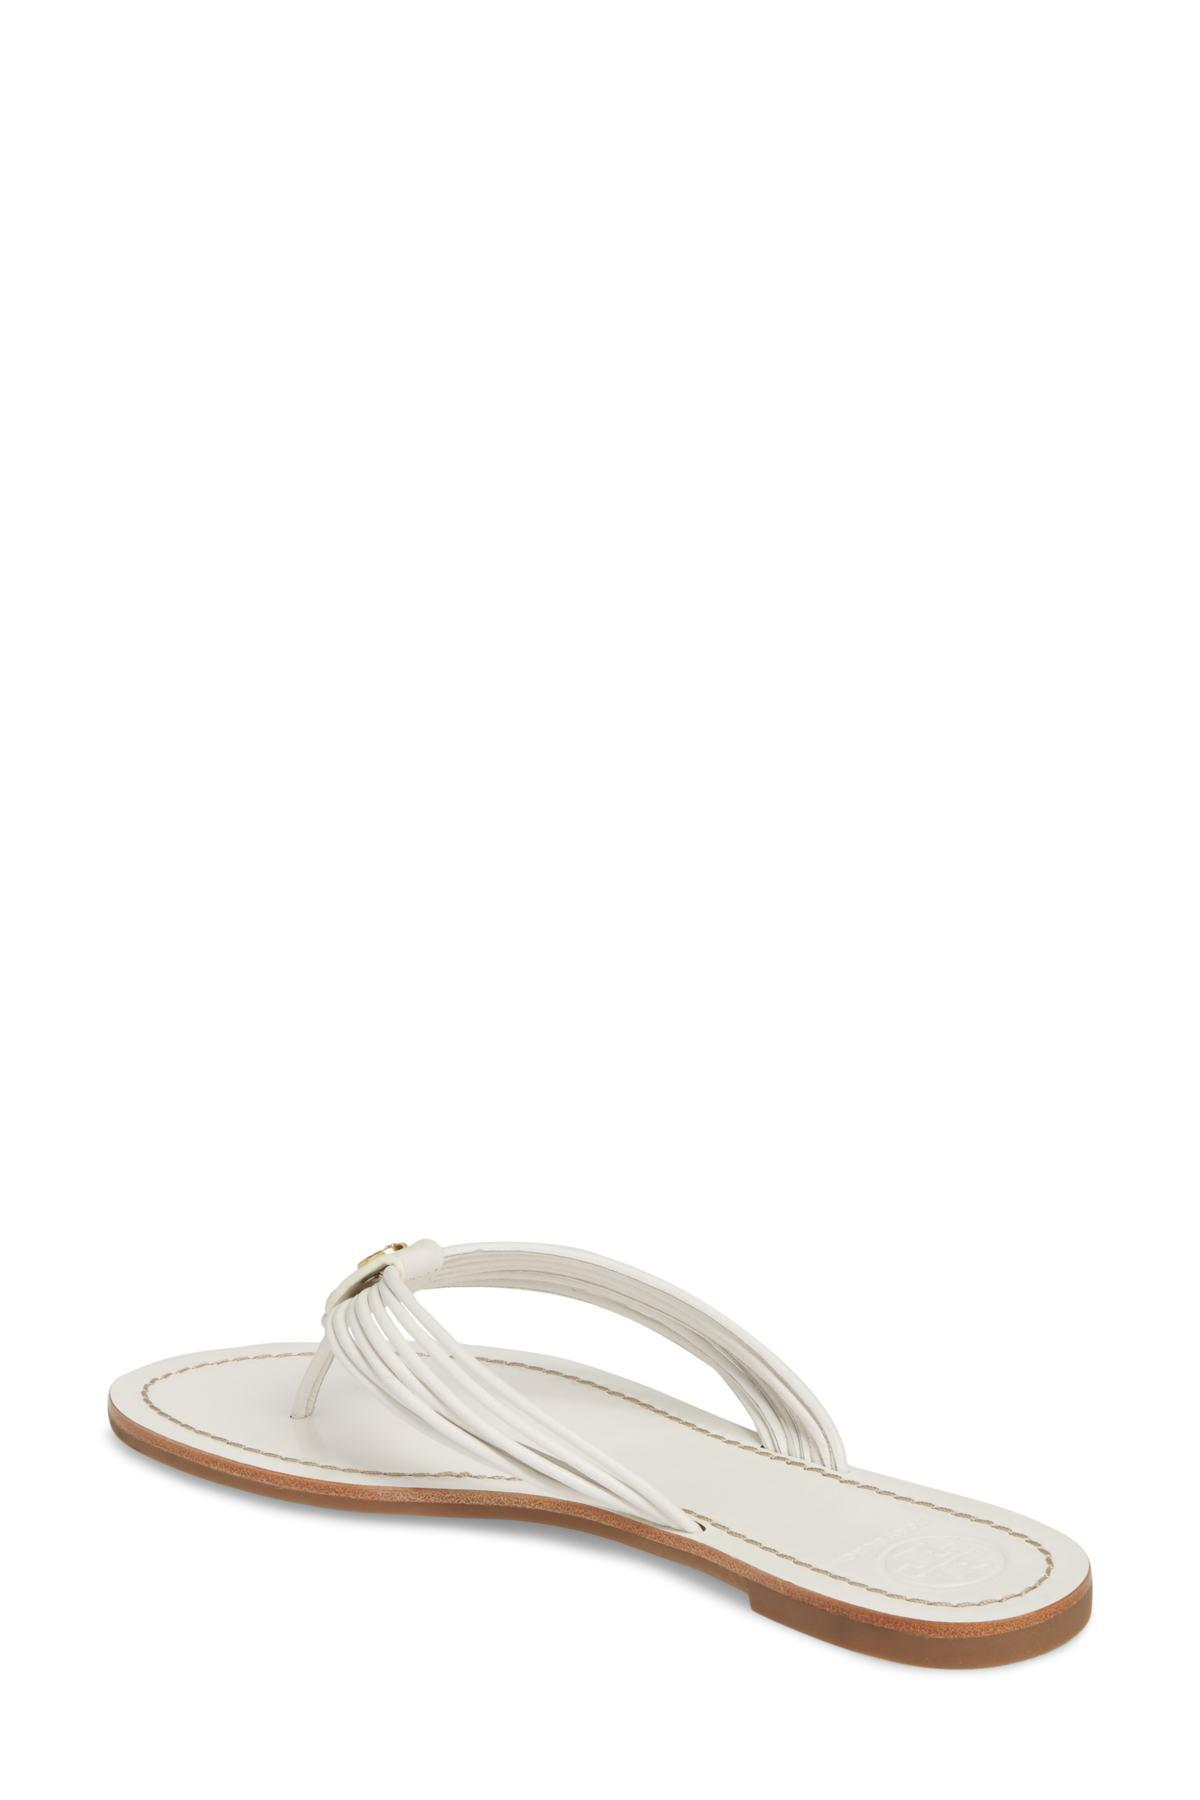 251b9bed460f Lyst - Tory Burch Sienna Strappy Thong Sandal (women) in White